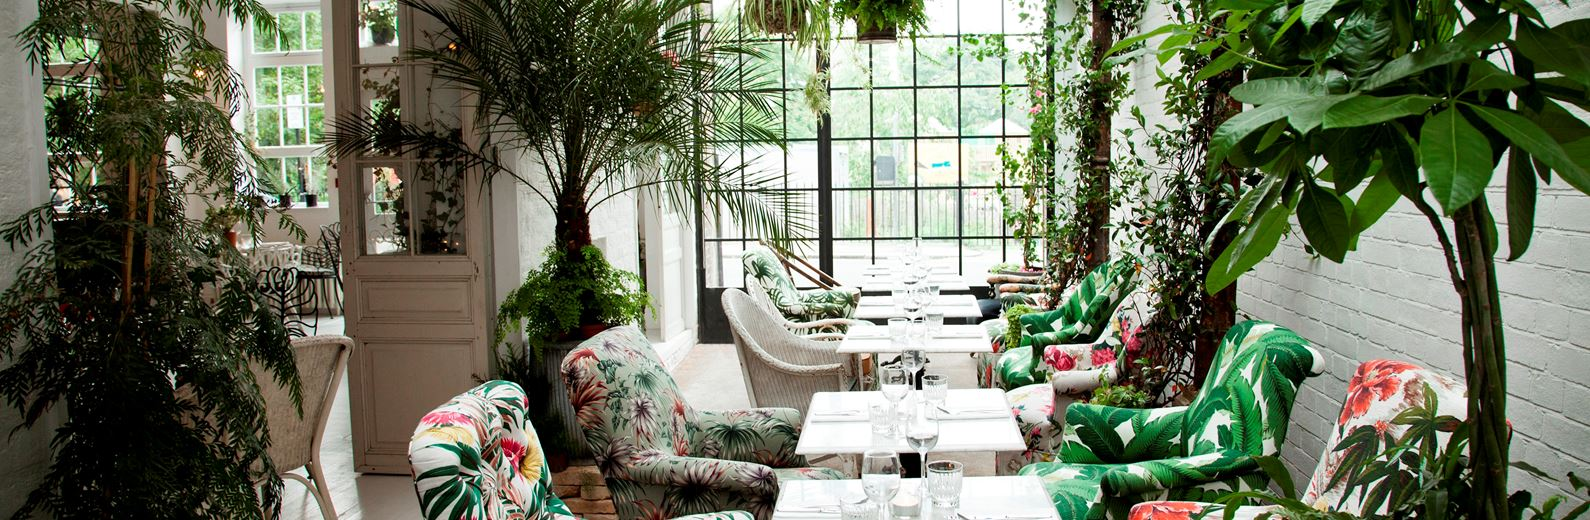 Bourne Hollingsworth Buildings 1 Ketel One Vodka Highlights Sustainability With Pop Up Espresso Martini Garden in London